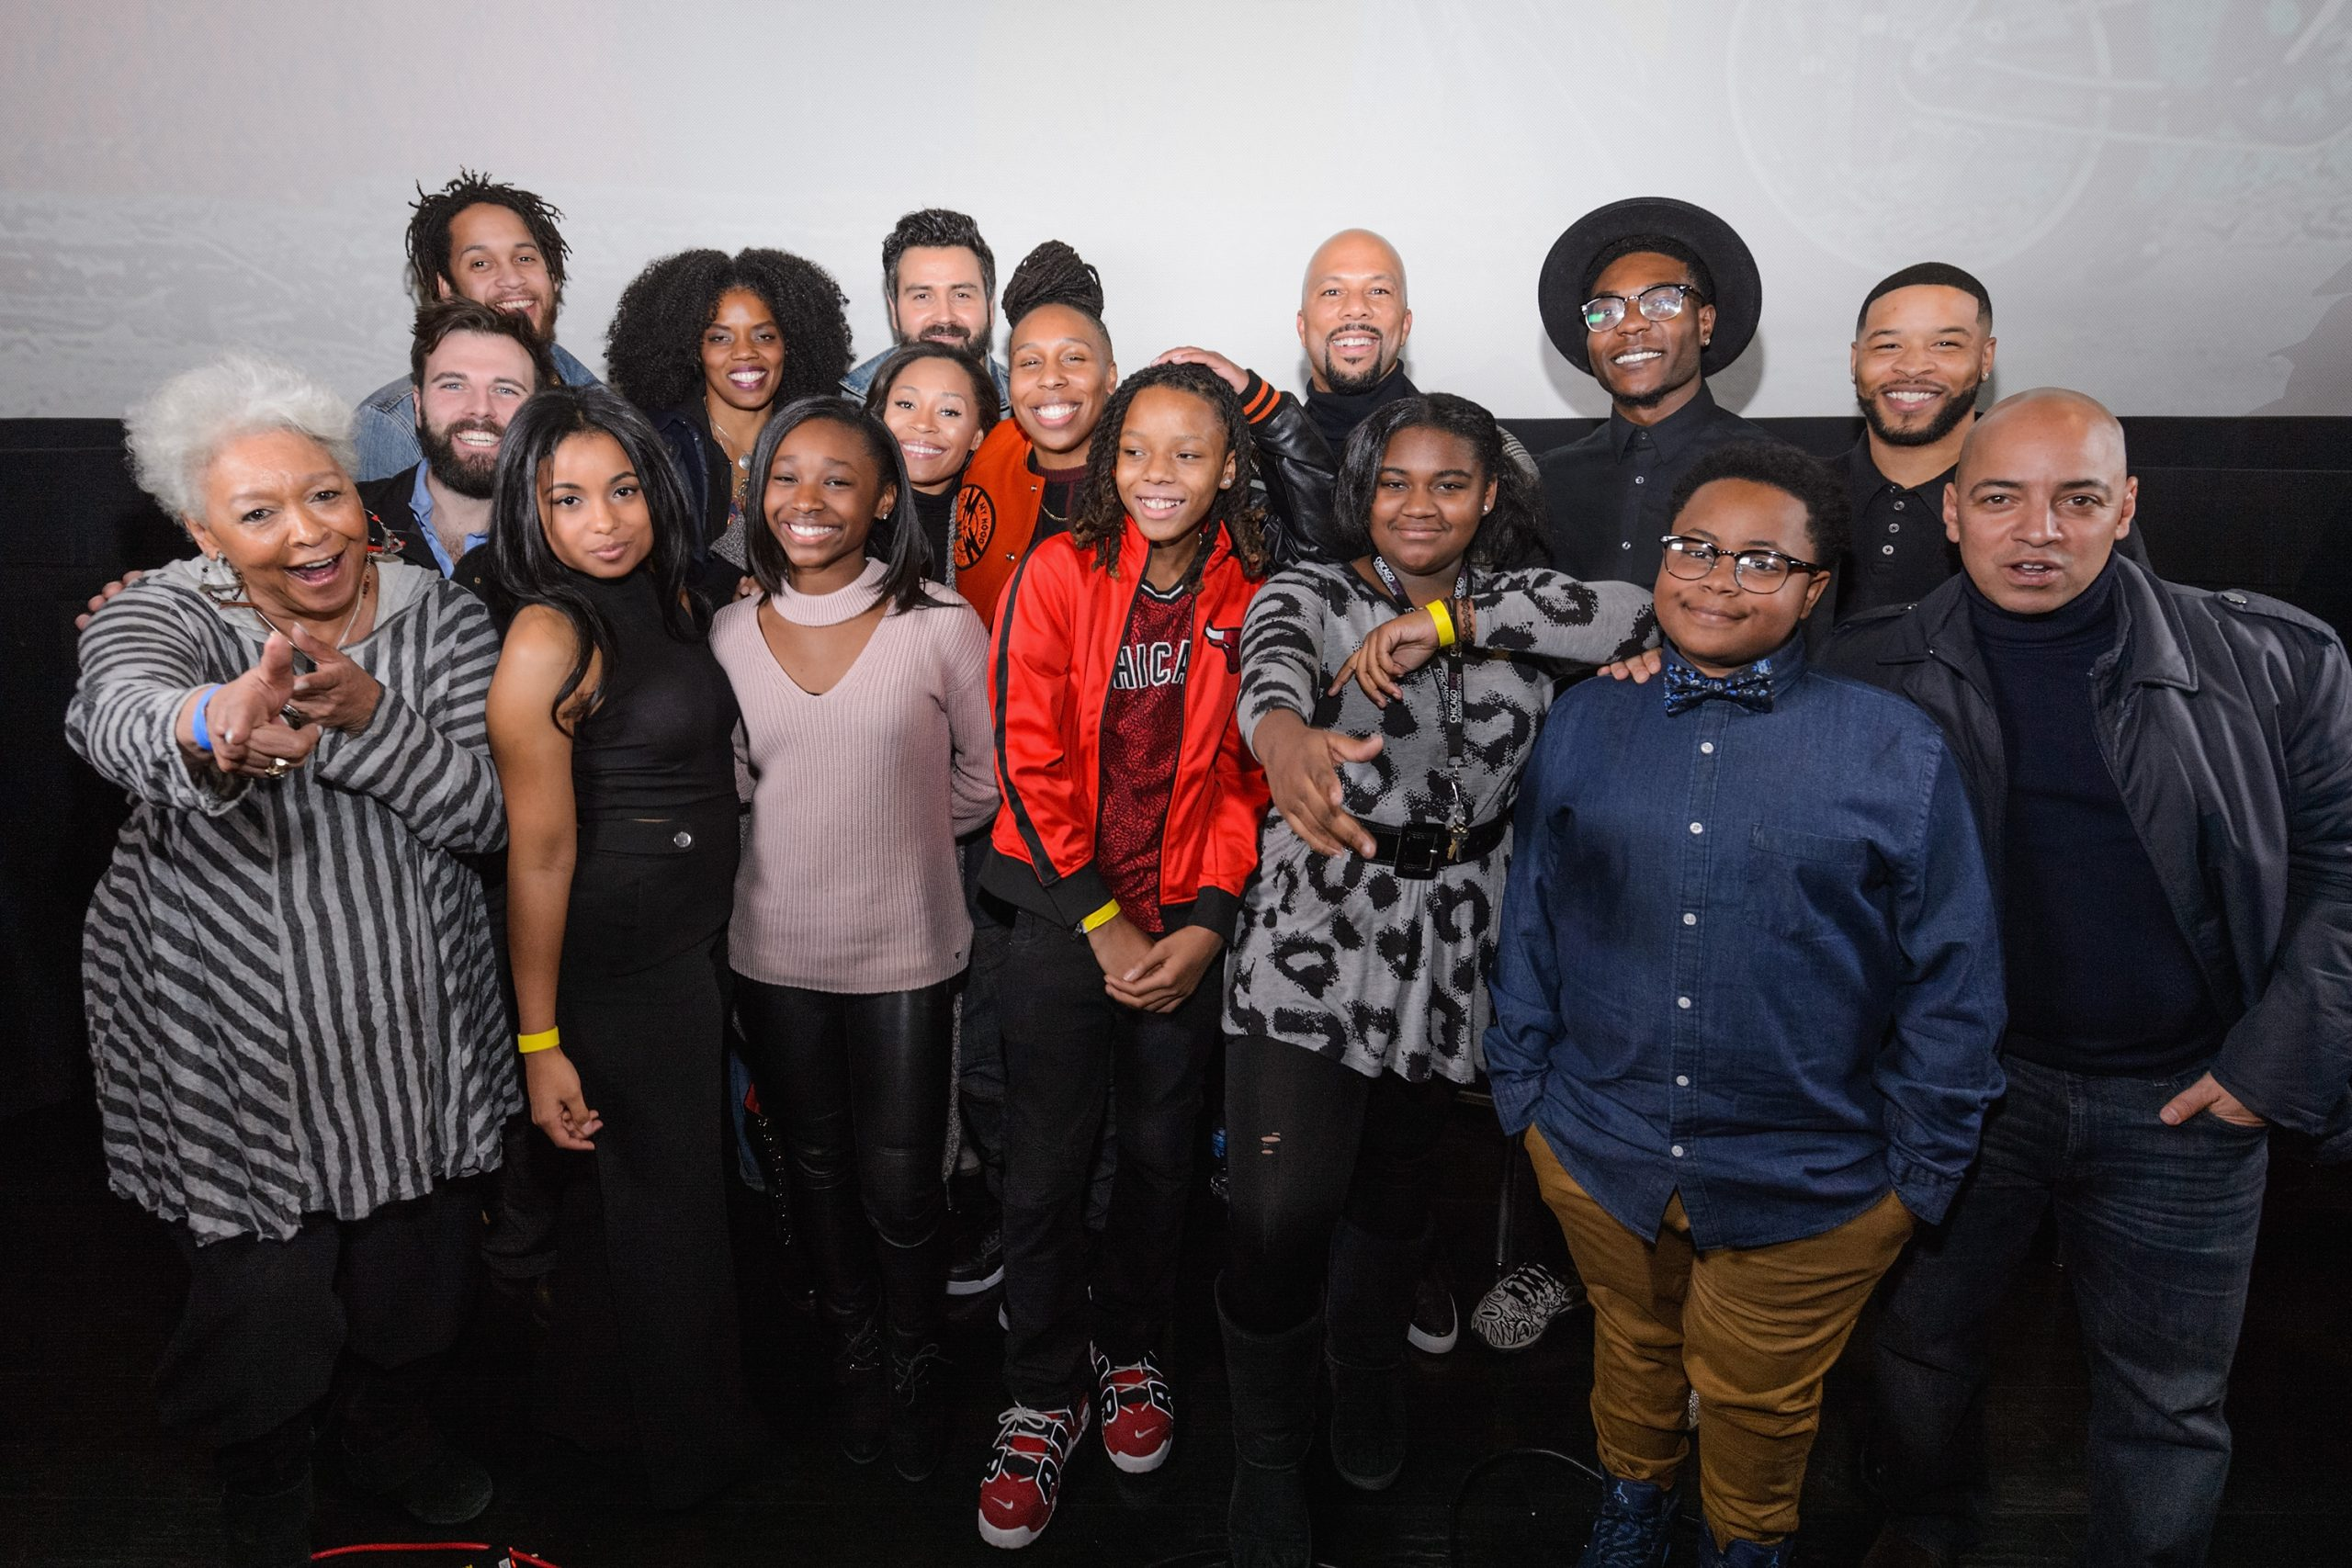 Cast members attends the Q&A during an advance screening of Showtime's 'The Chi' on Chicago's South Side